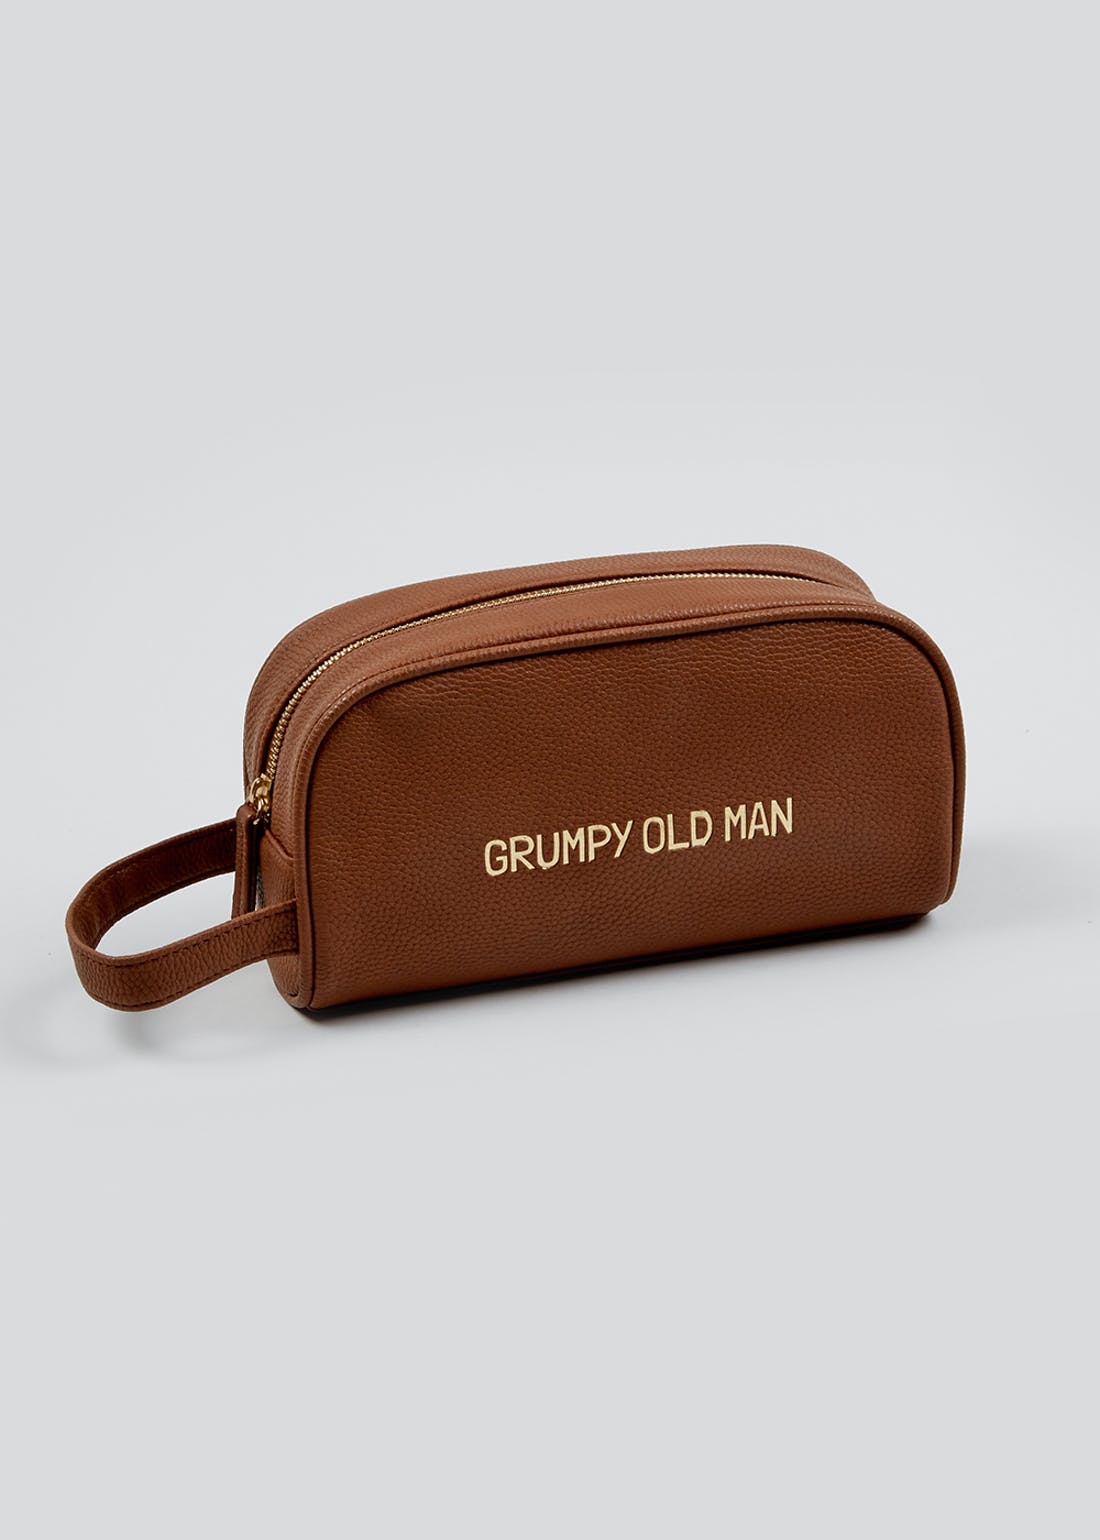 Grumpy Old Man Wash Bag (23.5cm x 13.5cm x 8.5cm)